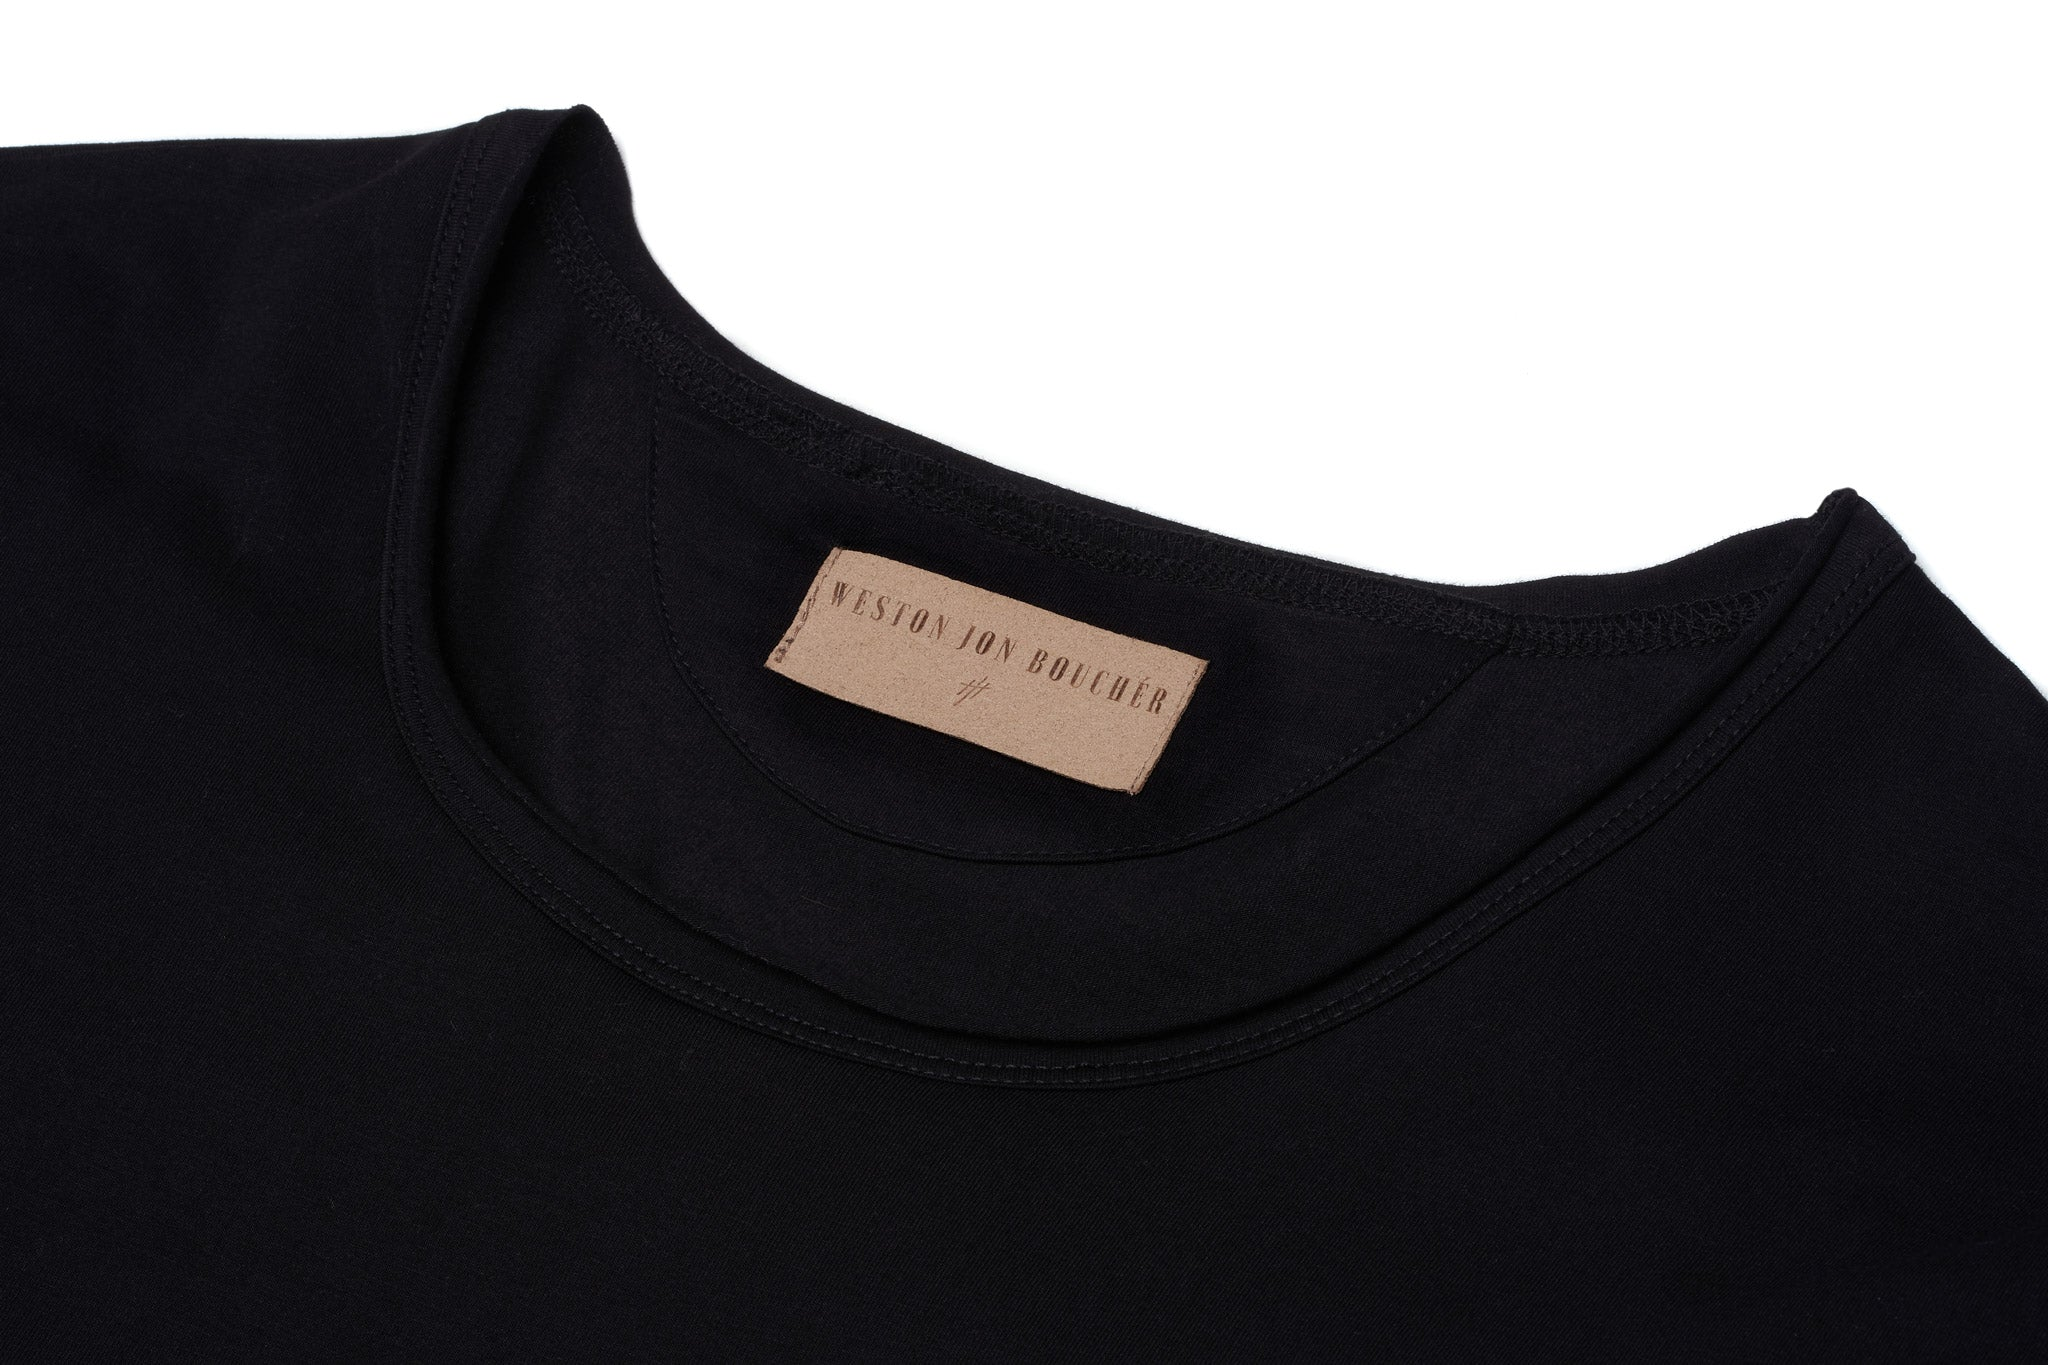 The Essential Extended Slim Fit Black Tee - weston-jon-boucher